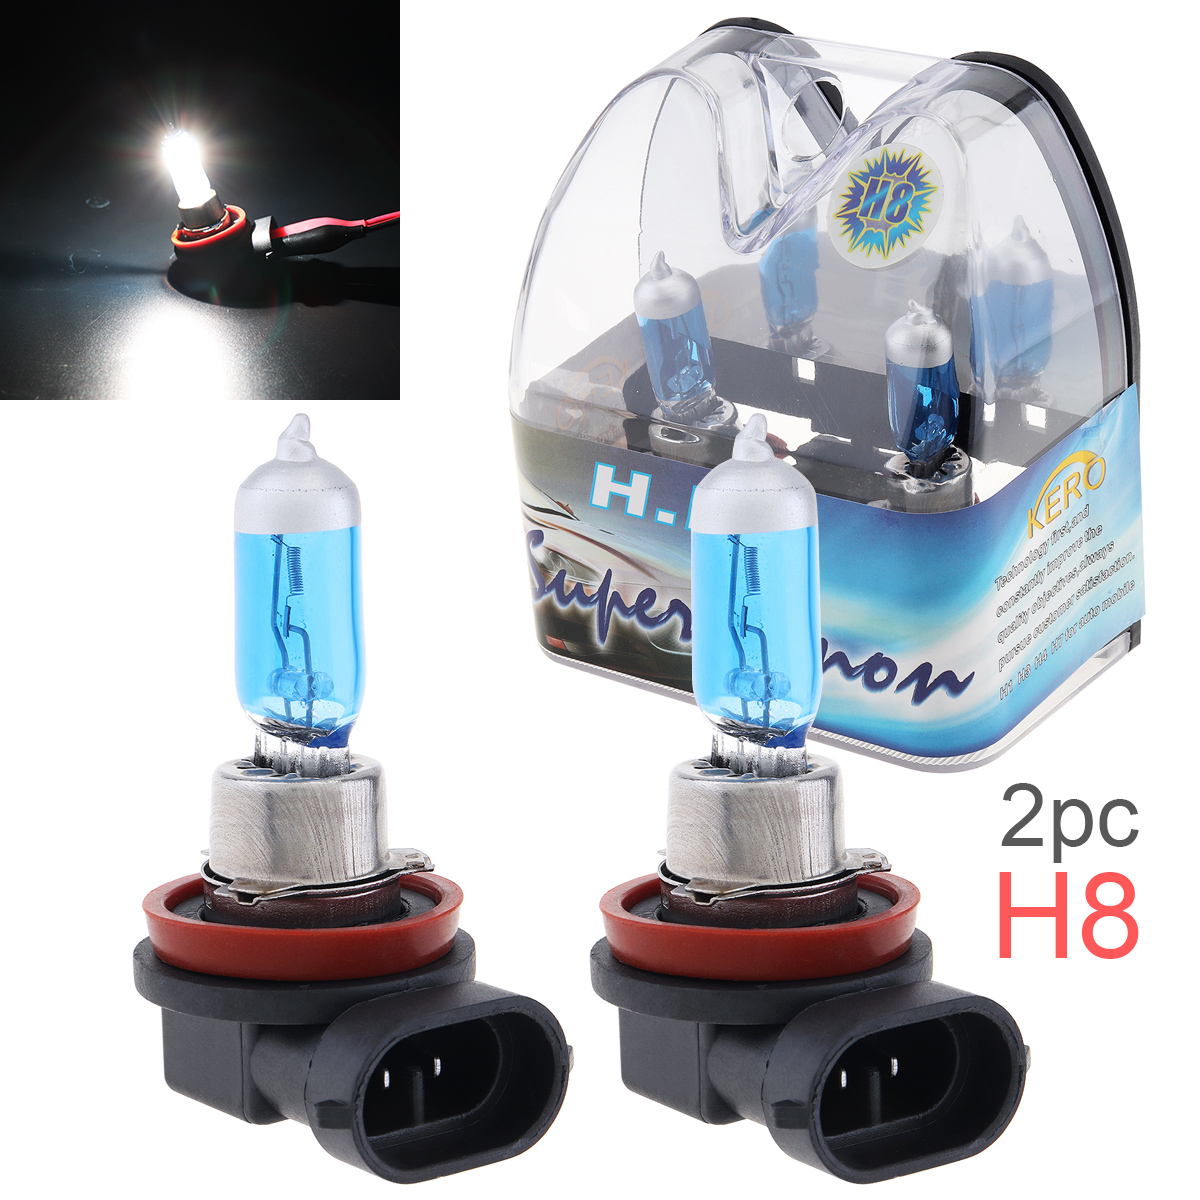 2pcs 12V <font><b>H8</b></font> 35W 6000K <font><b>White</b></font> Light Super Bright Car Xenon <font><b>Halogen</b></font> Lamp Auto Front Headlight Fog Bulb image